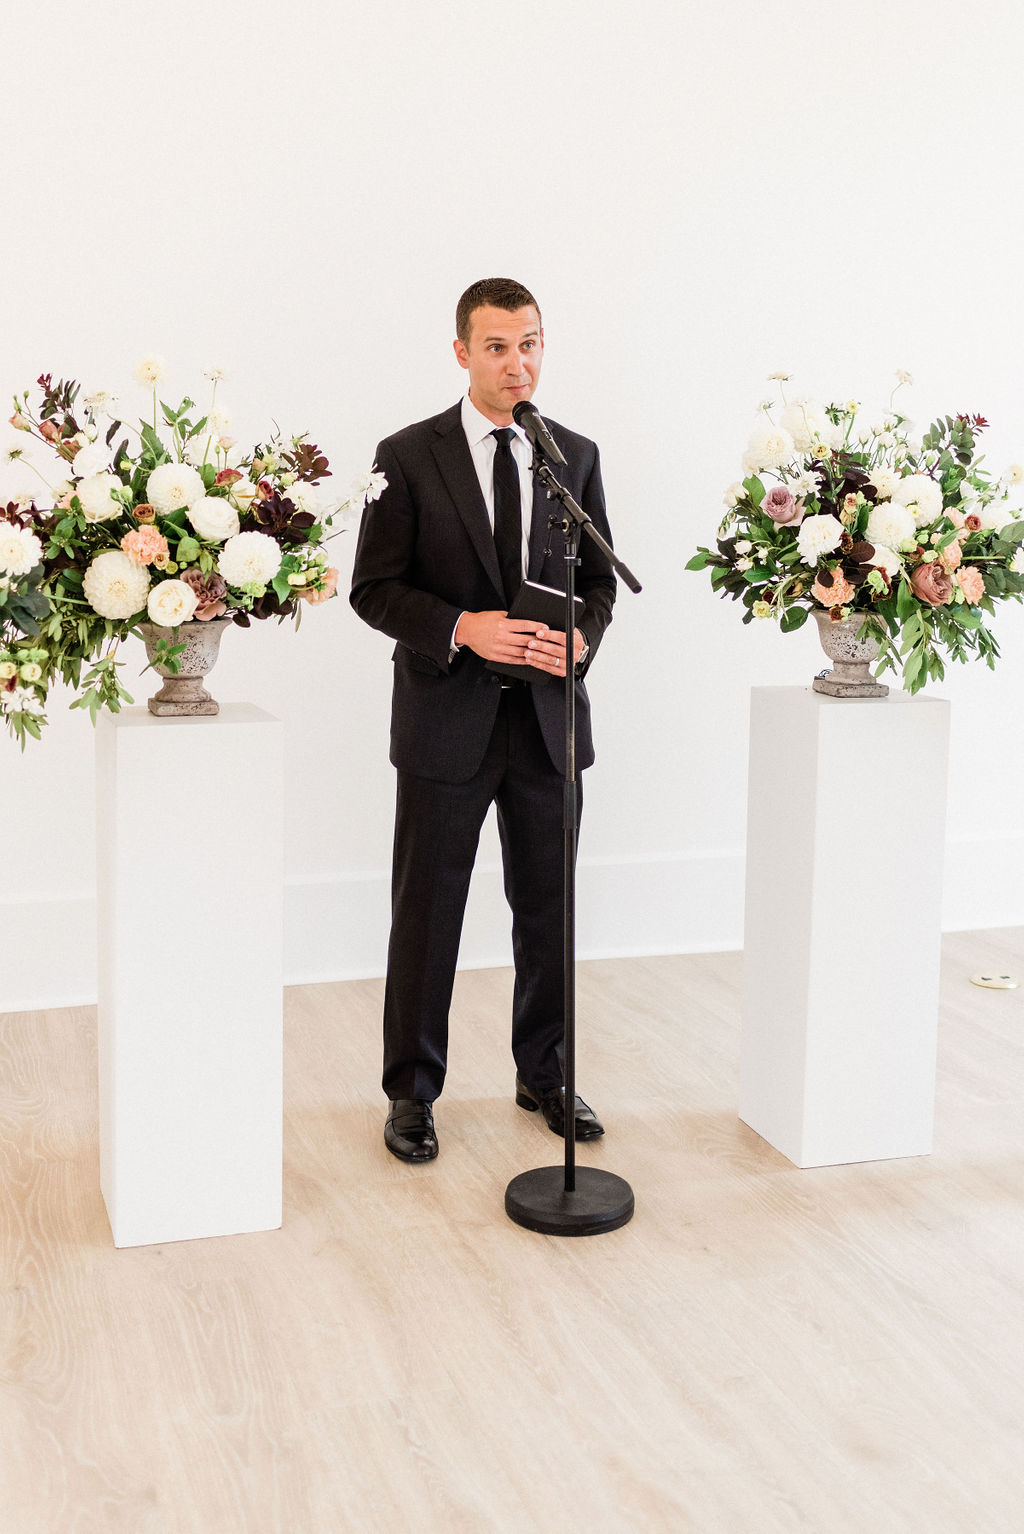 Officiant preforming a ceremony during a Kalamazoo, Michigan wedding